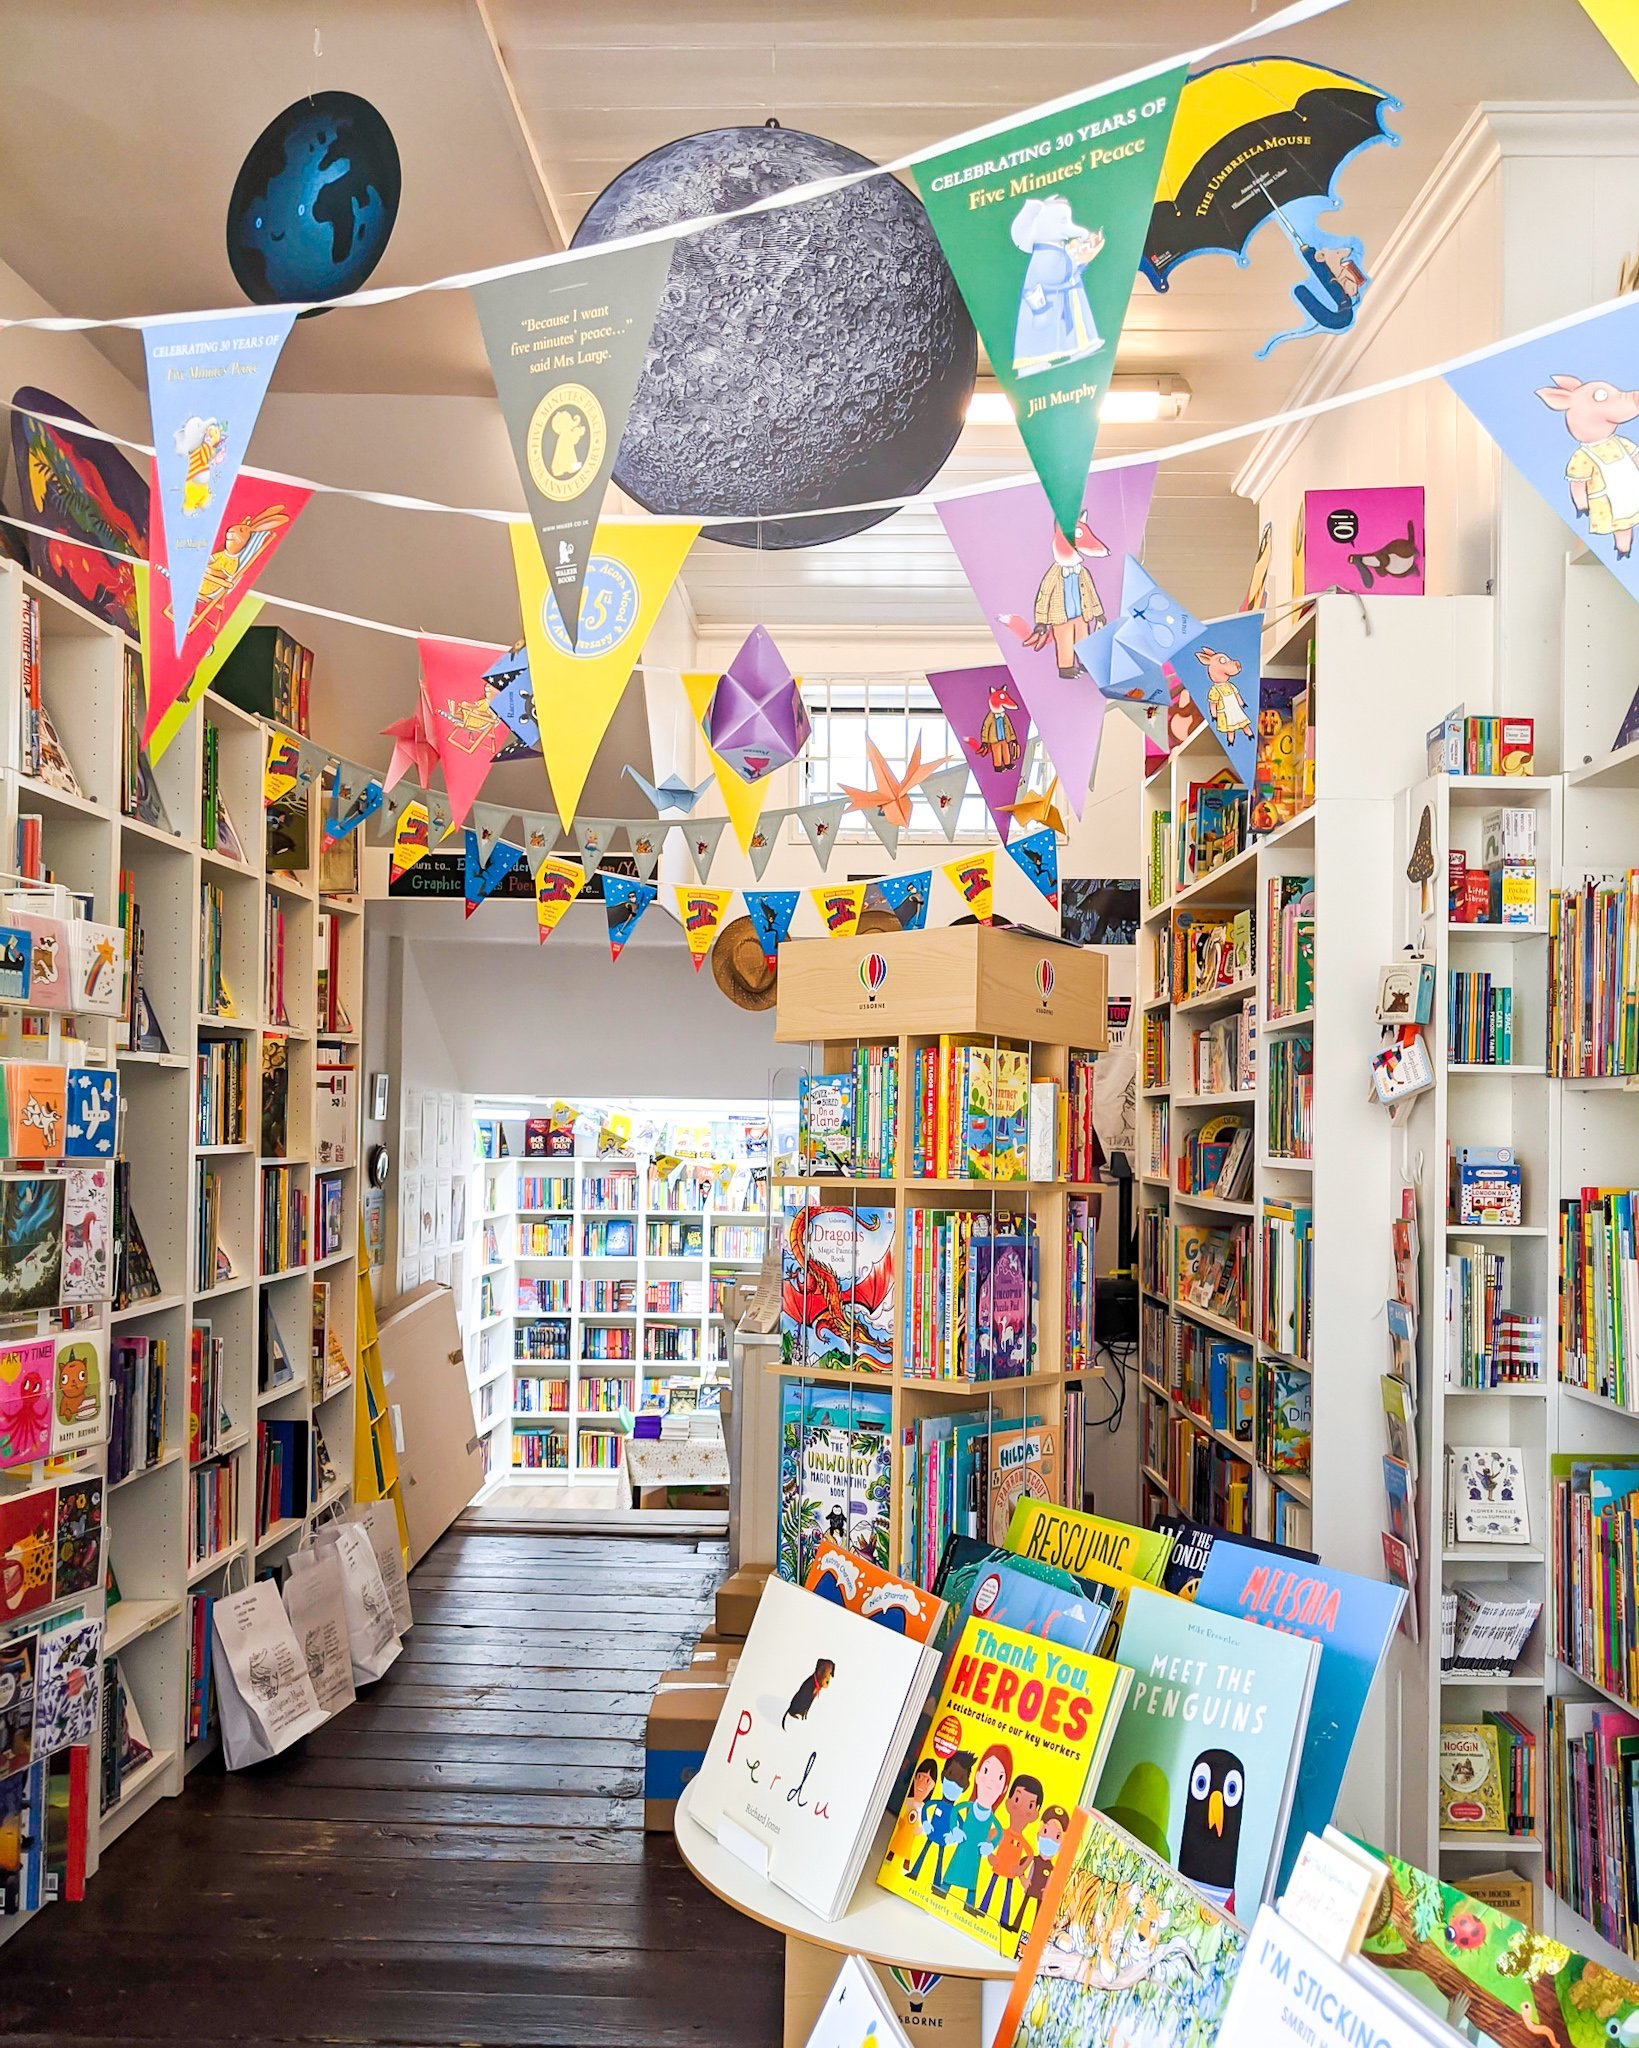 The Alligator's Mouth, Richmond, Surrey - one of many brilliant children's bookshops in Britain